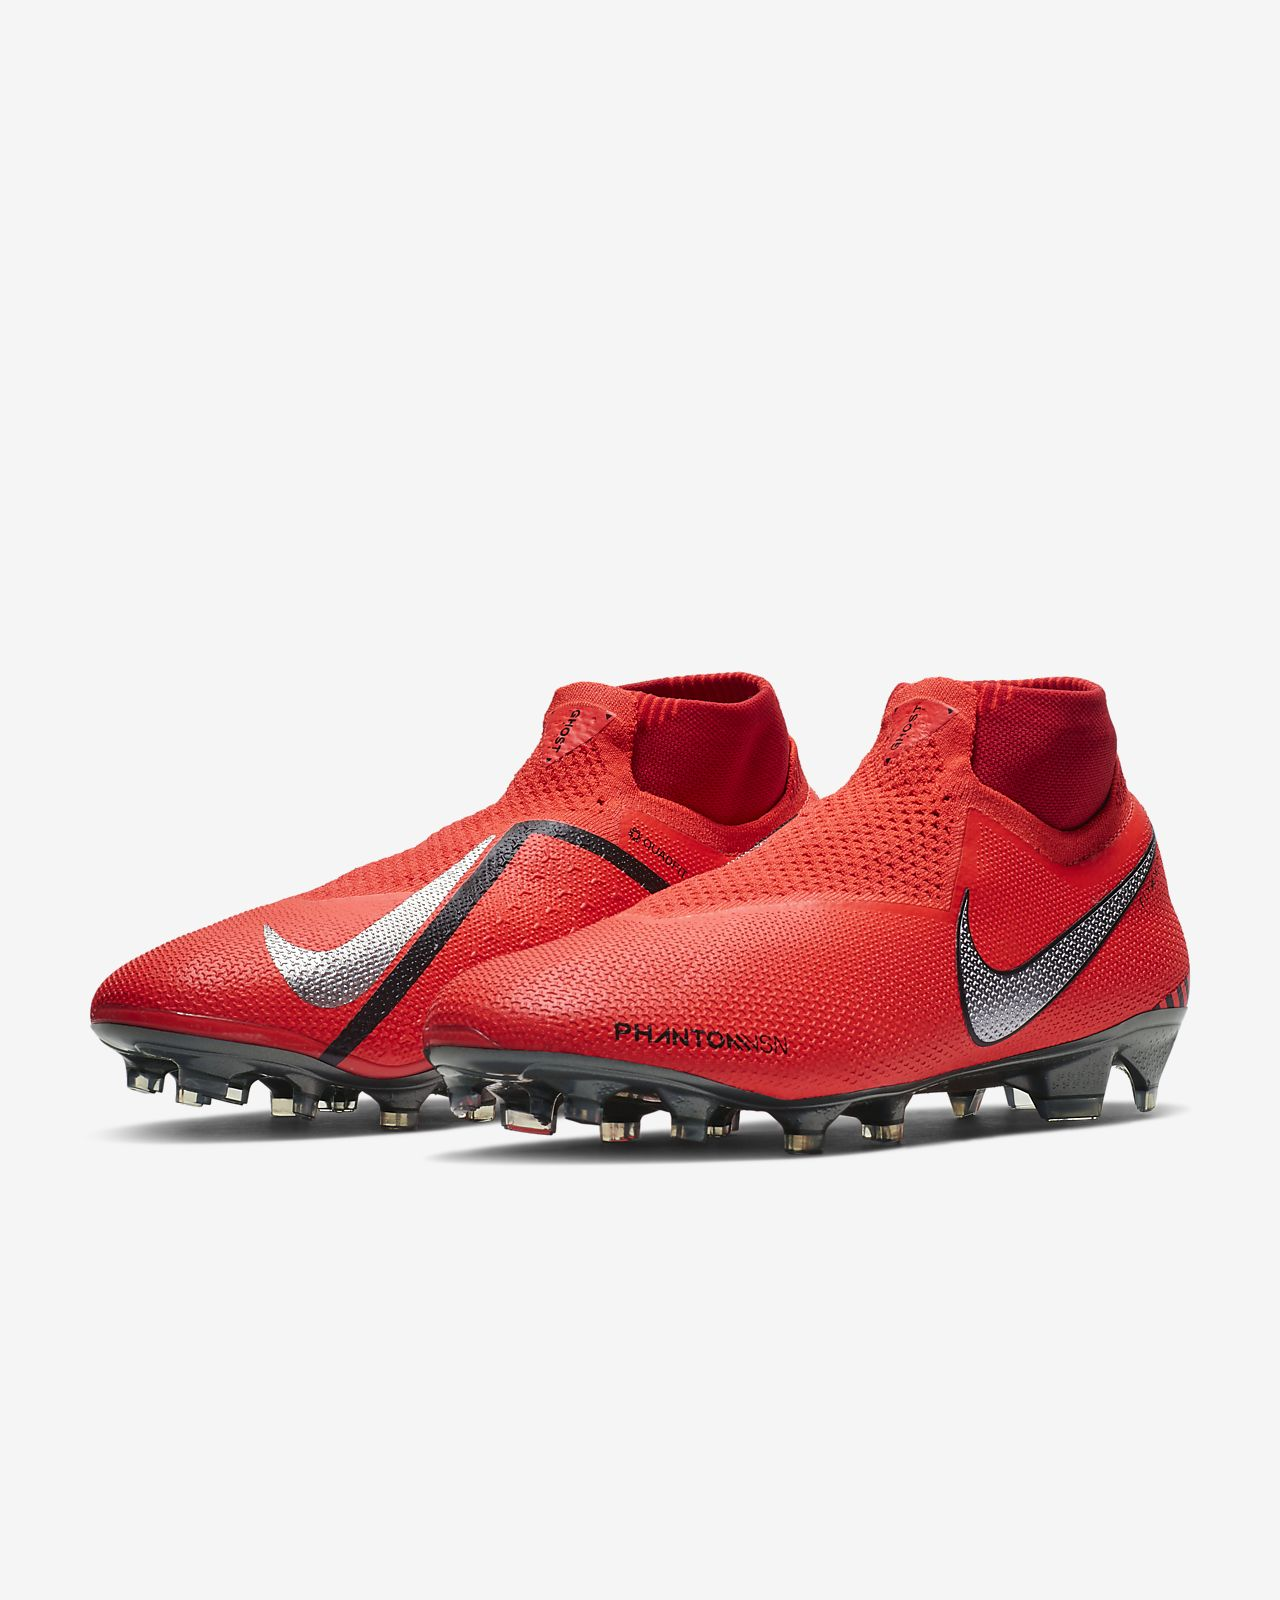 online store 7e51a f192d ... Nike PhantomVSN Elite Dynamic Fit Game Over FG Firm-Ground Football Boot